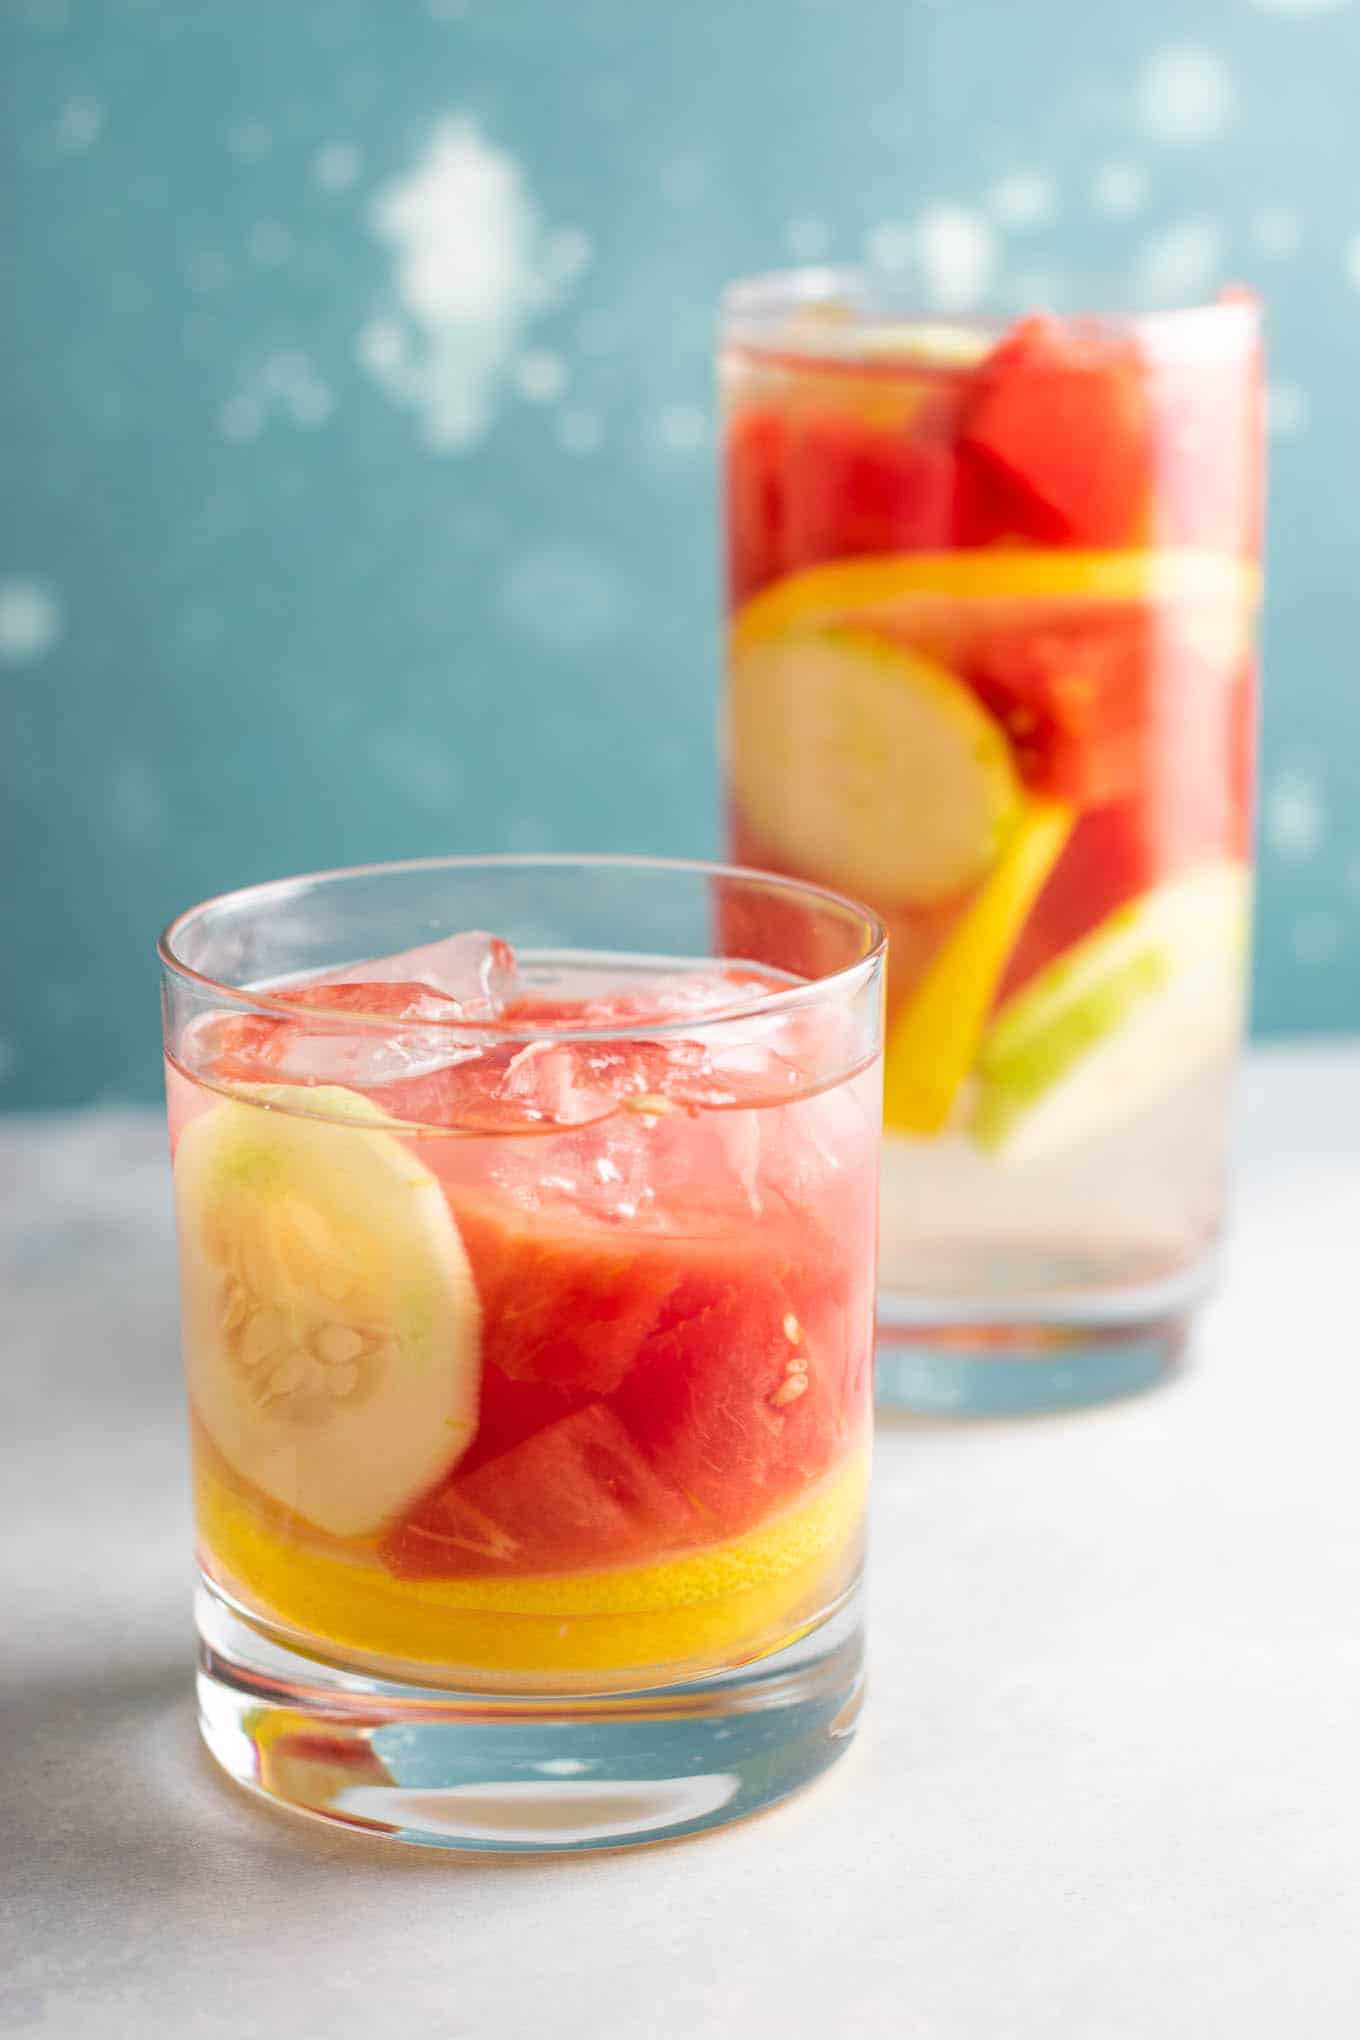 How to make watermelon water with cucumbers and lemon #detoxwater #watermelon #watermelondetox #watermelonwater #vegan #drinks #healthy